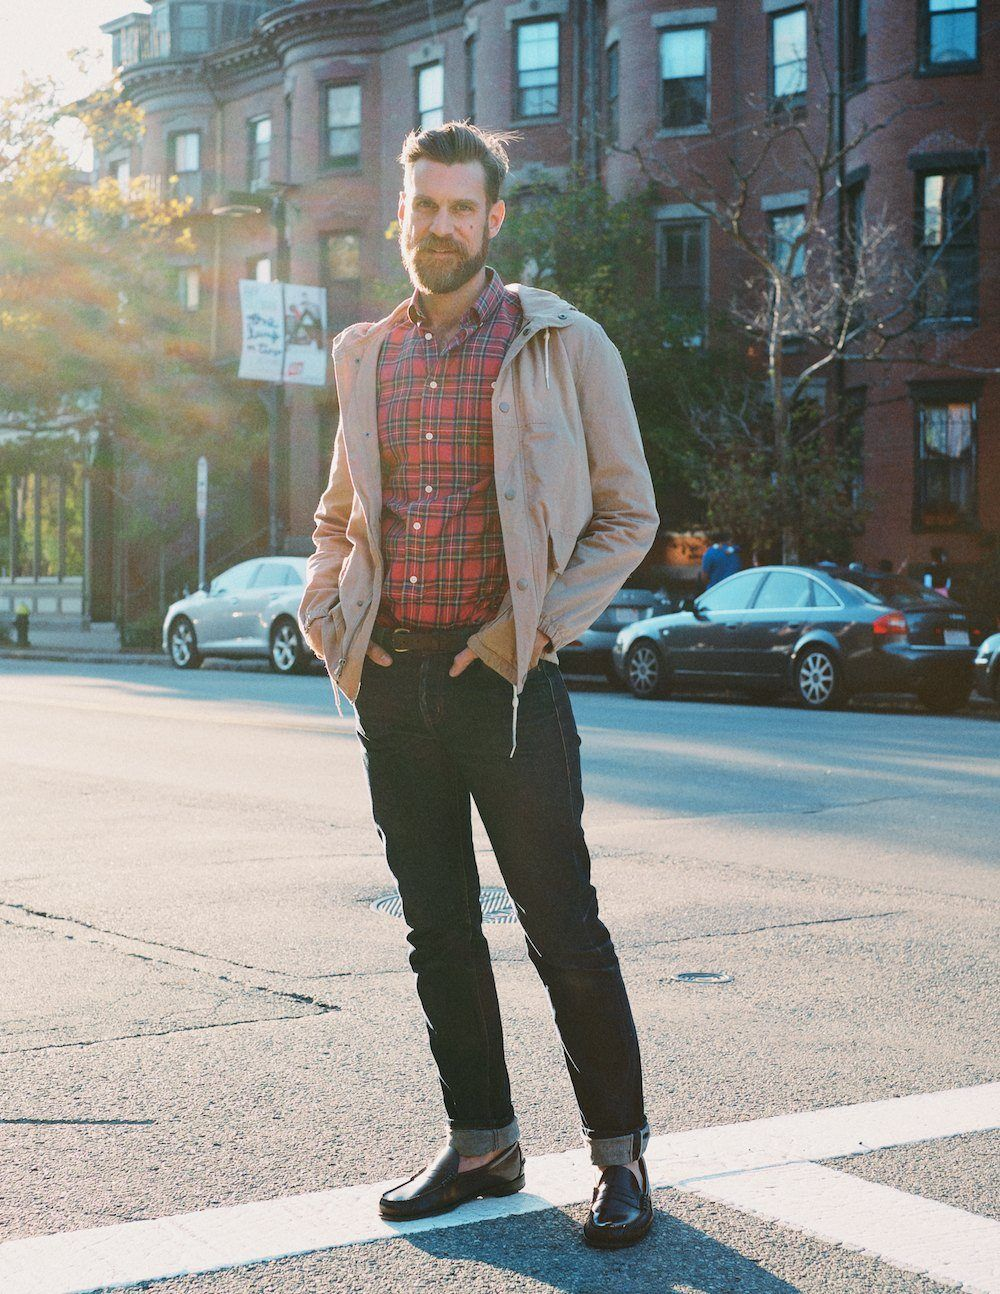 Flannel shirt men outfit  Guys Flannel Shirts u  Best Flannel Outfit Ideas for Men